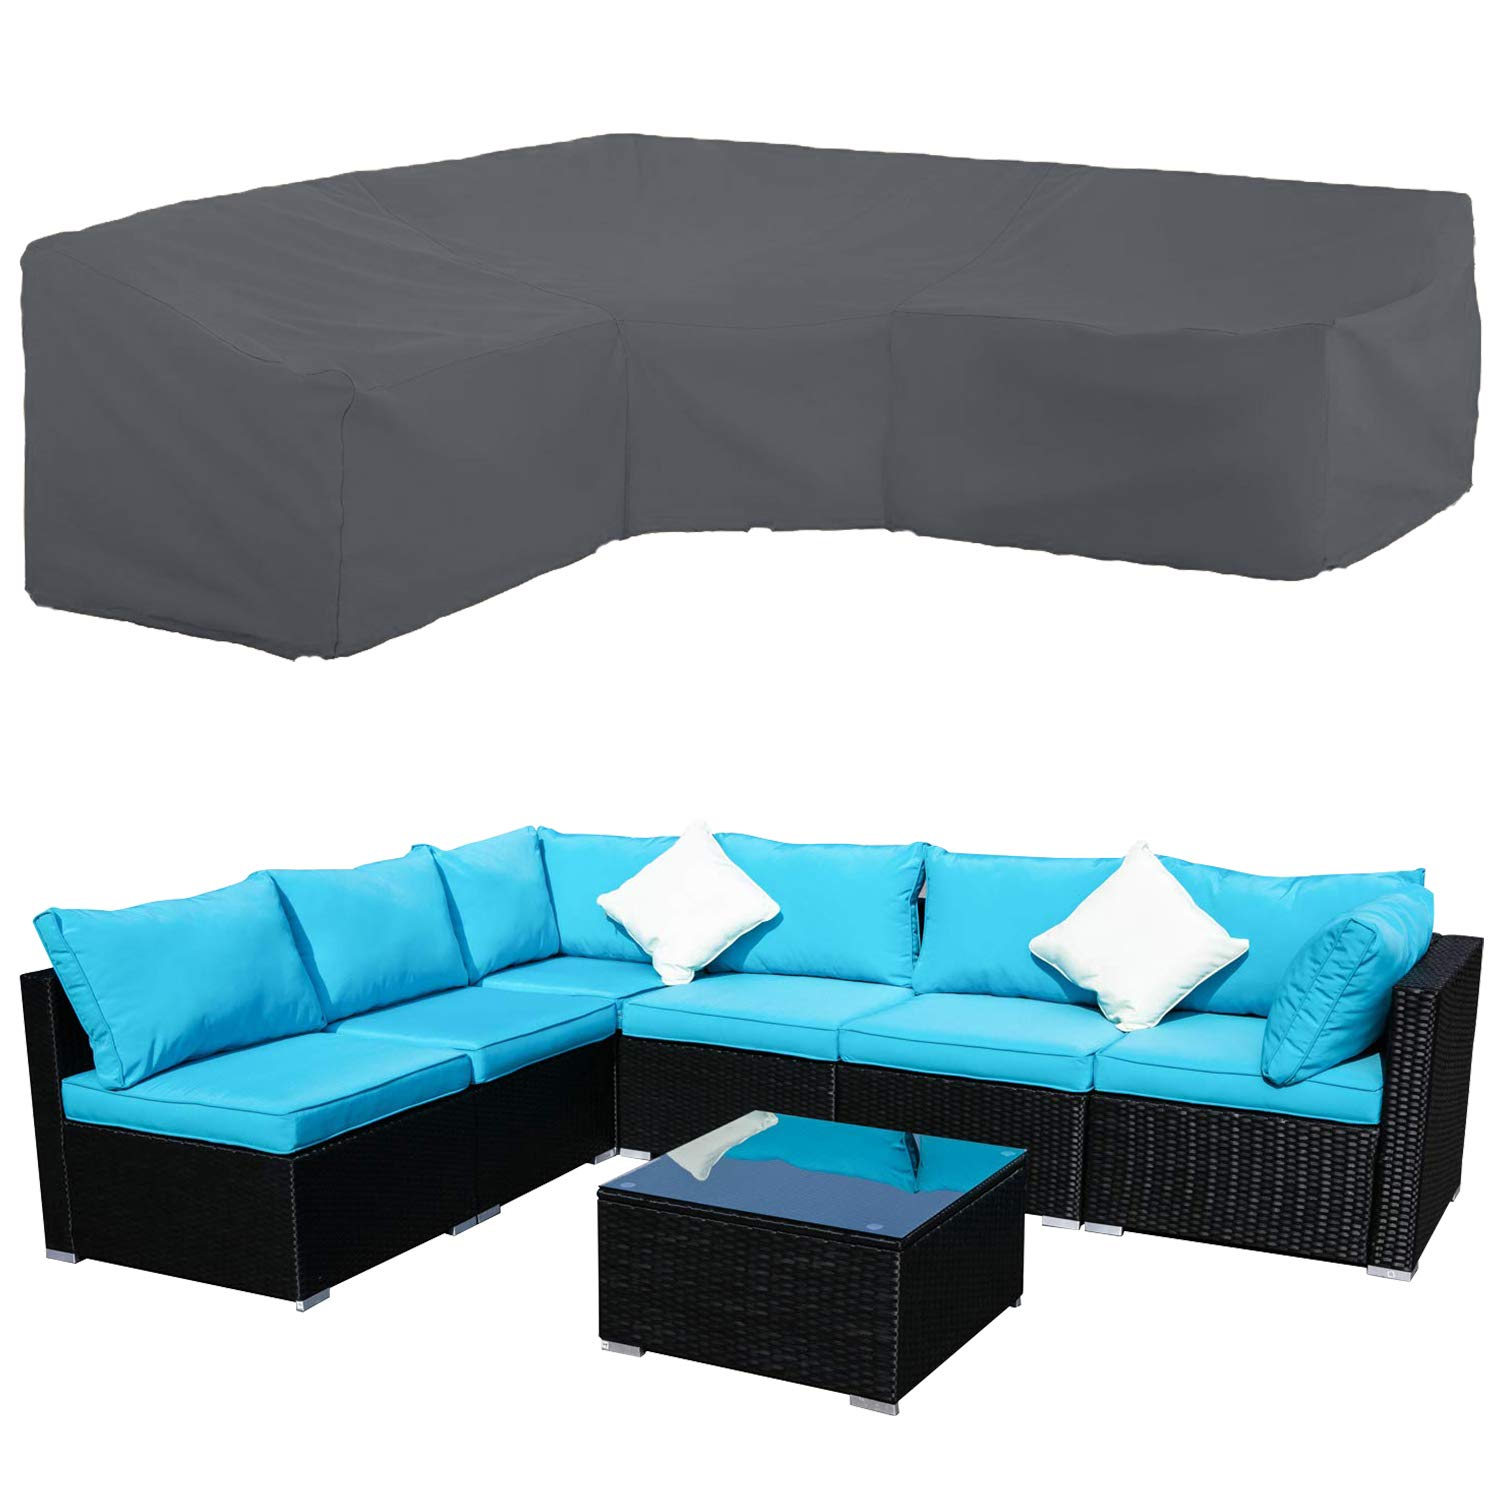 STARTWO Patio V-Shaped Sectional Sofa Cover, Patio Sectional Furniture Cover Waterproof Outdoor Sofa Cover L-Shaped Garden Couch Protector 100'' L (on Each Side) x 33.5'' D x 31'' H by STARTWO